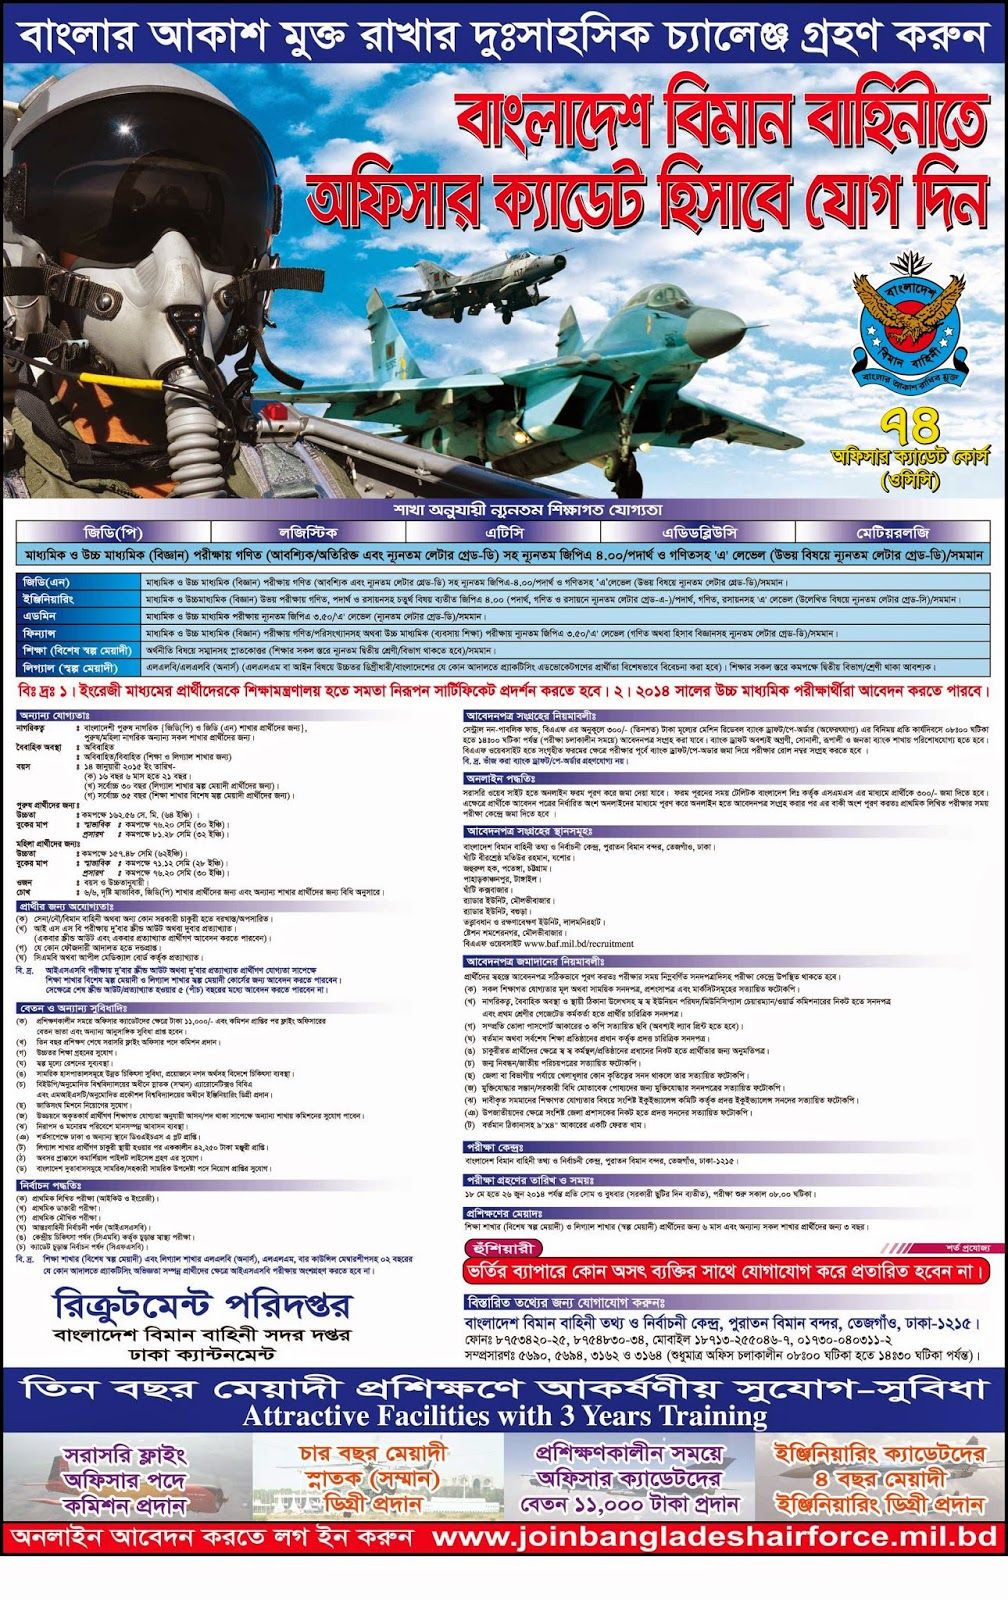 Join Bangladesh Air Force